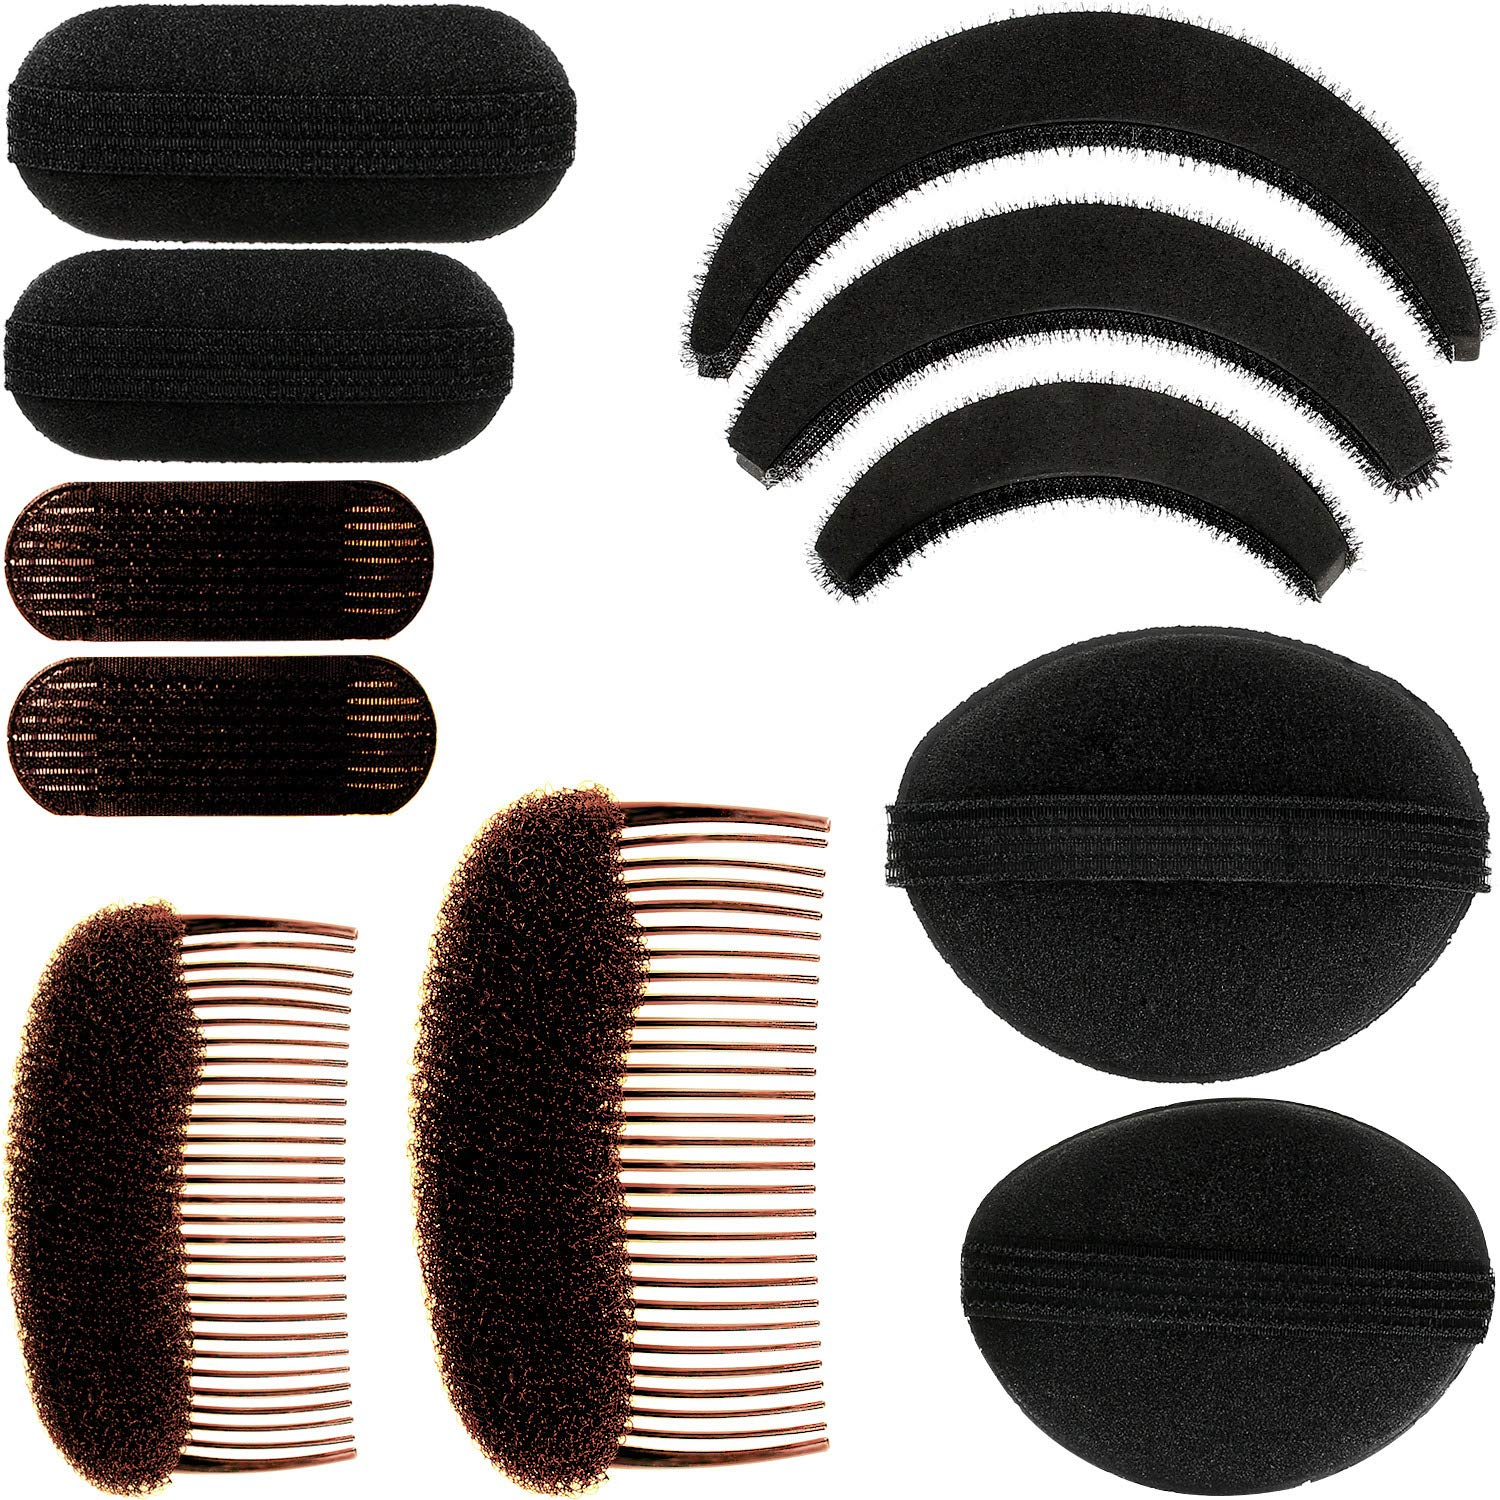 11 NEW Pieces Women Sponge Volume Bump Bases Hair Styli Inserts 67% OFF of fixed price